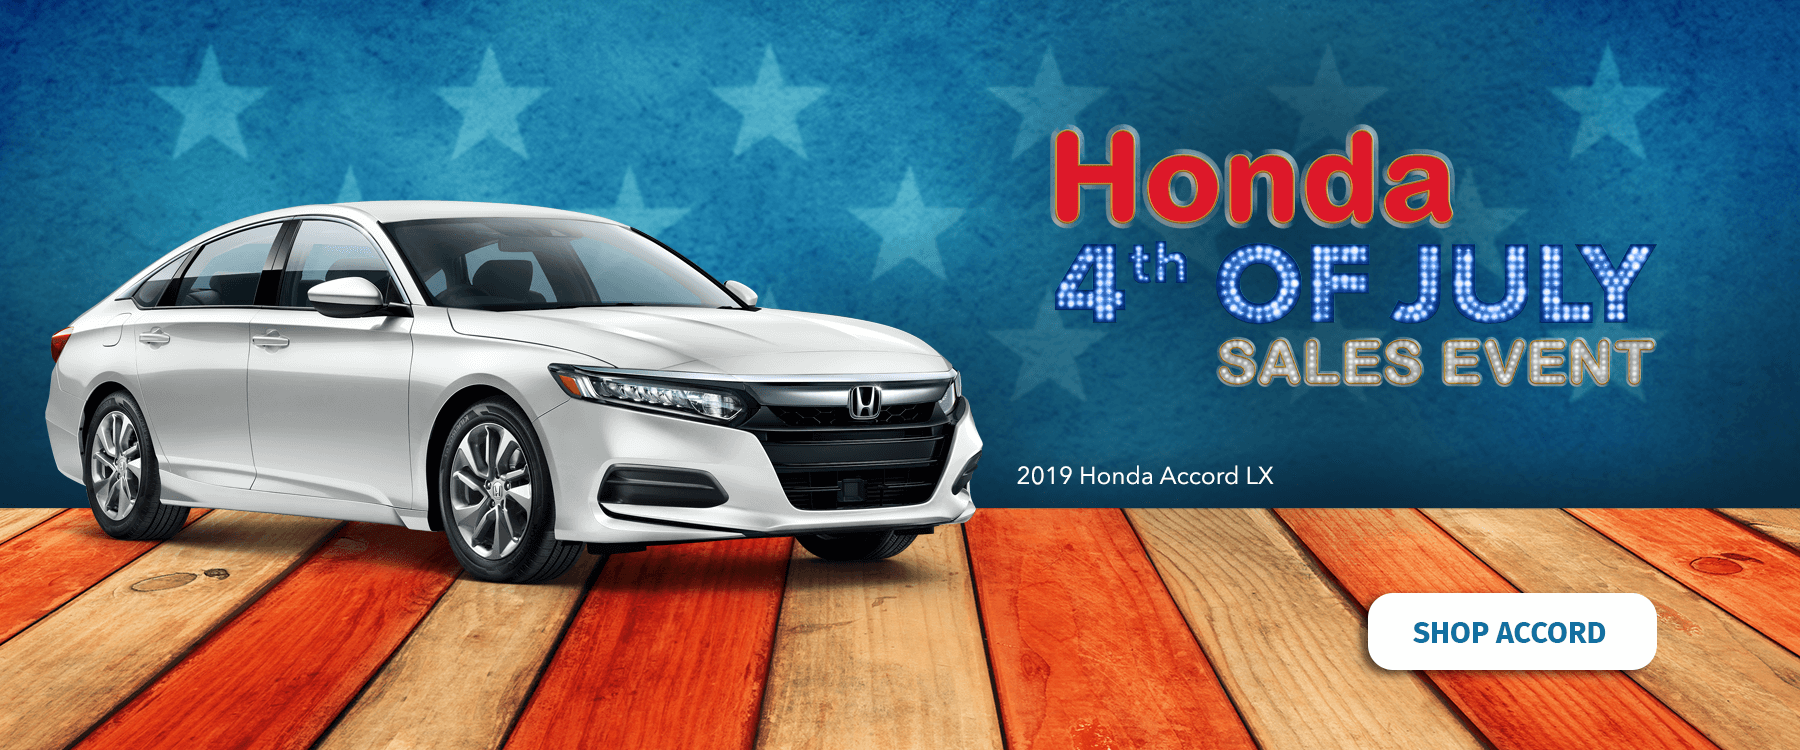 Honda 4th of July Sales Event 2019 Accord Slider